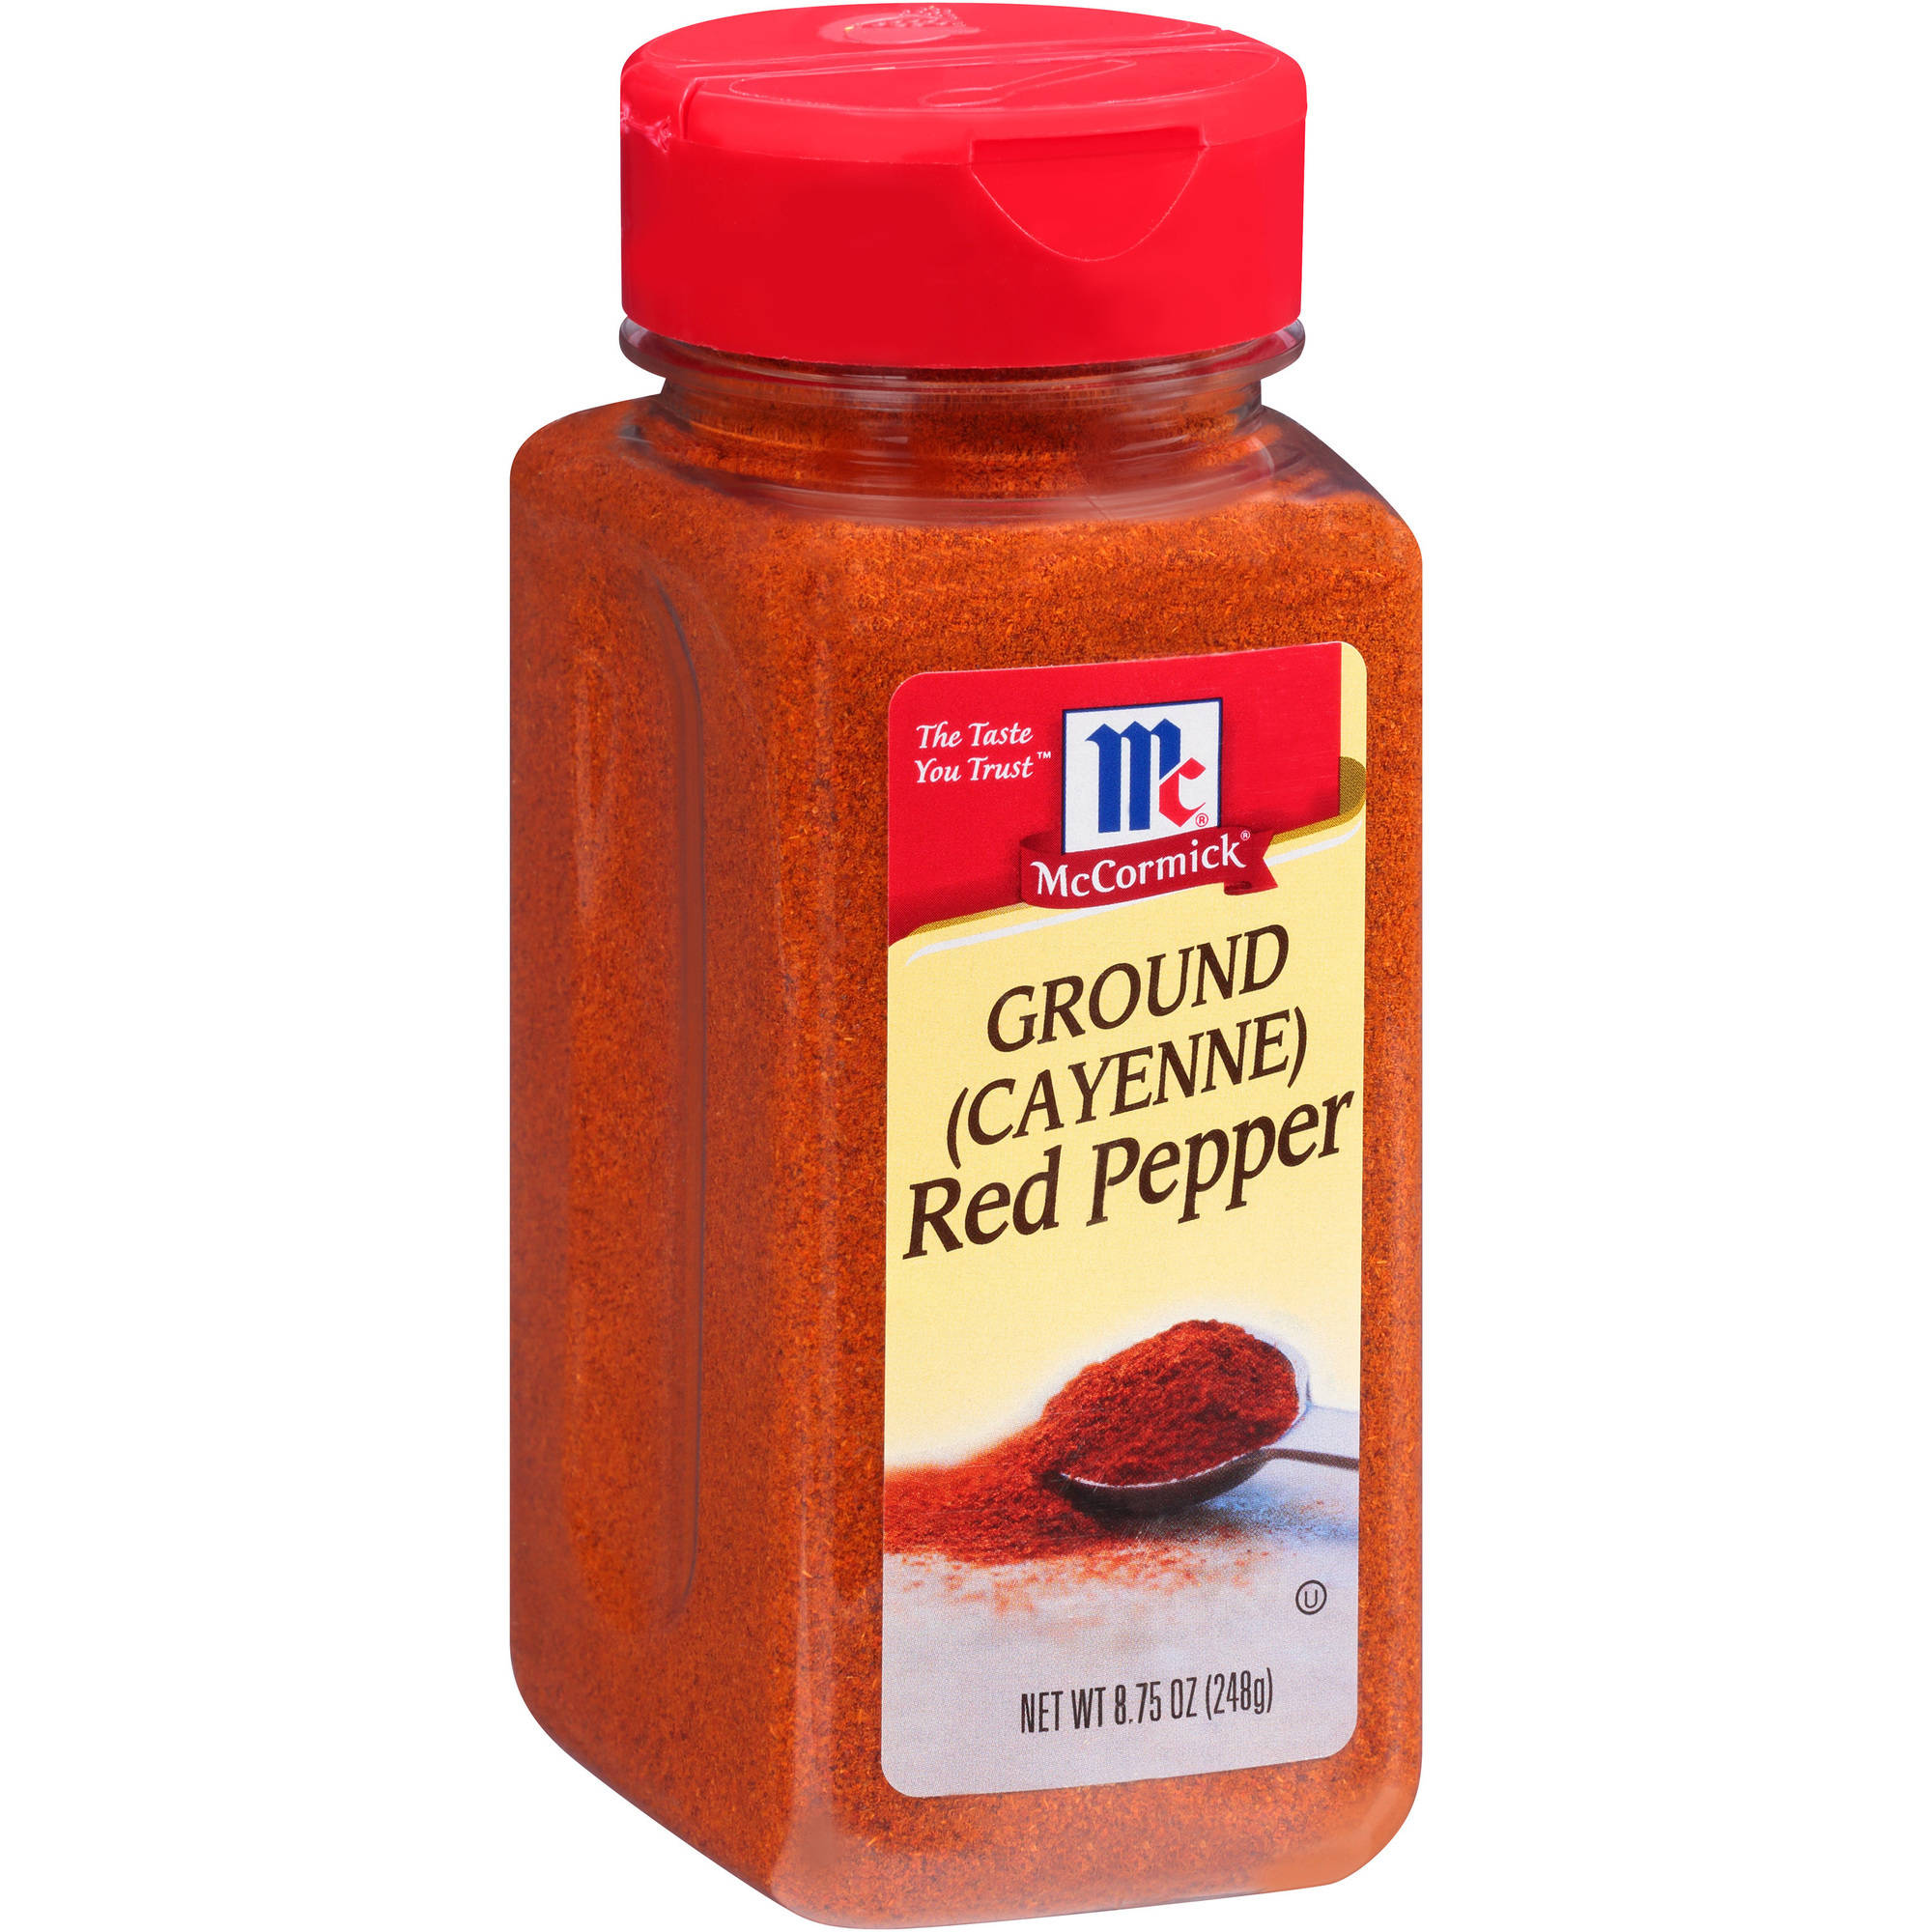 McCormick Ground Cayenne Red Pepper, 8.75 oz